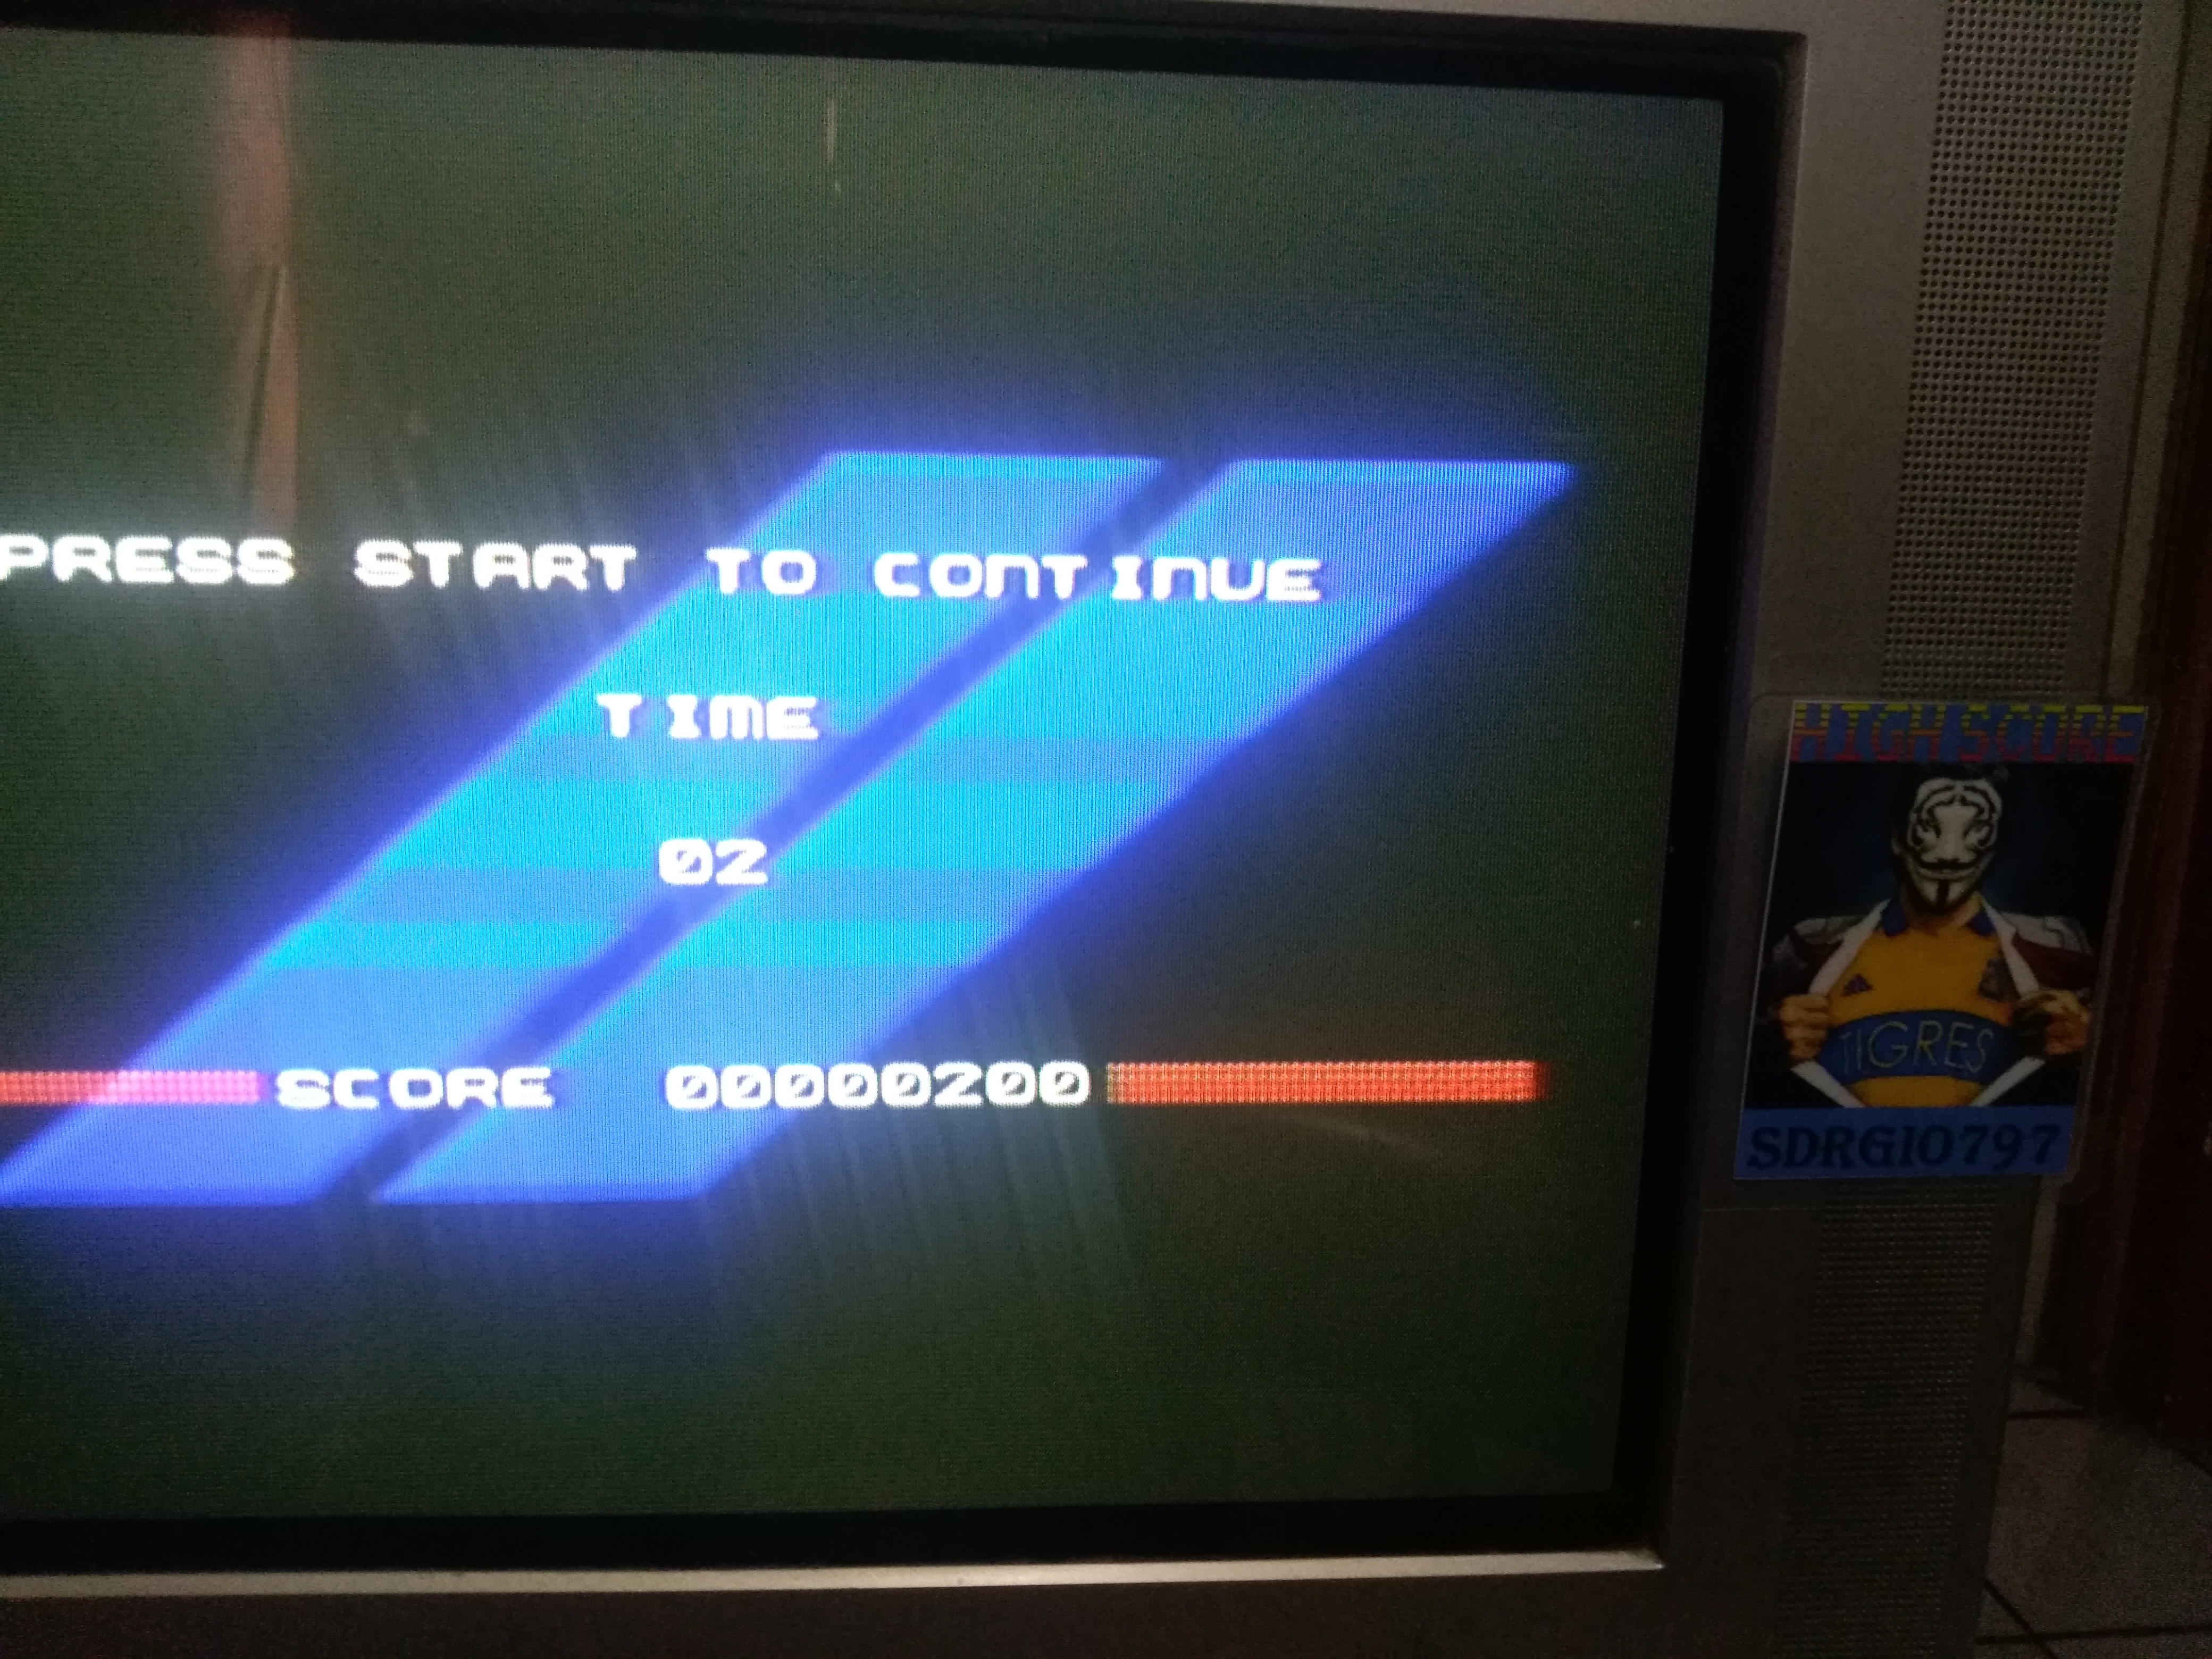 Sdrgio797: Flashback [Normal] (SNES/Super Famicom Emulated) 200 points on 2020-07-29 16:19:35